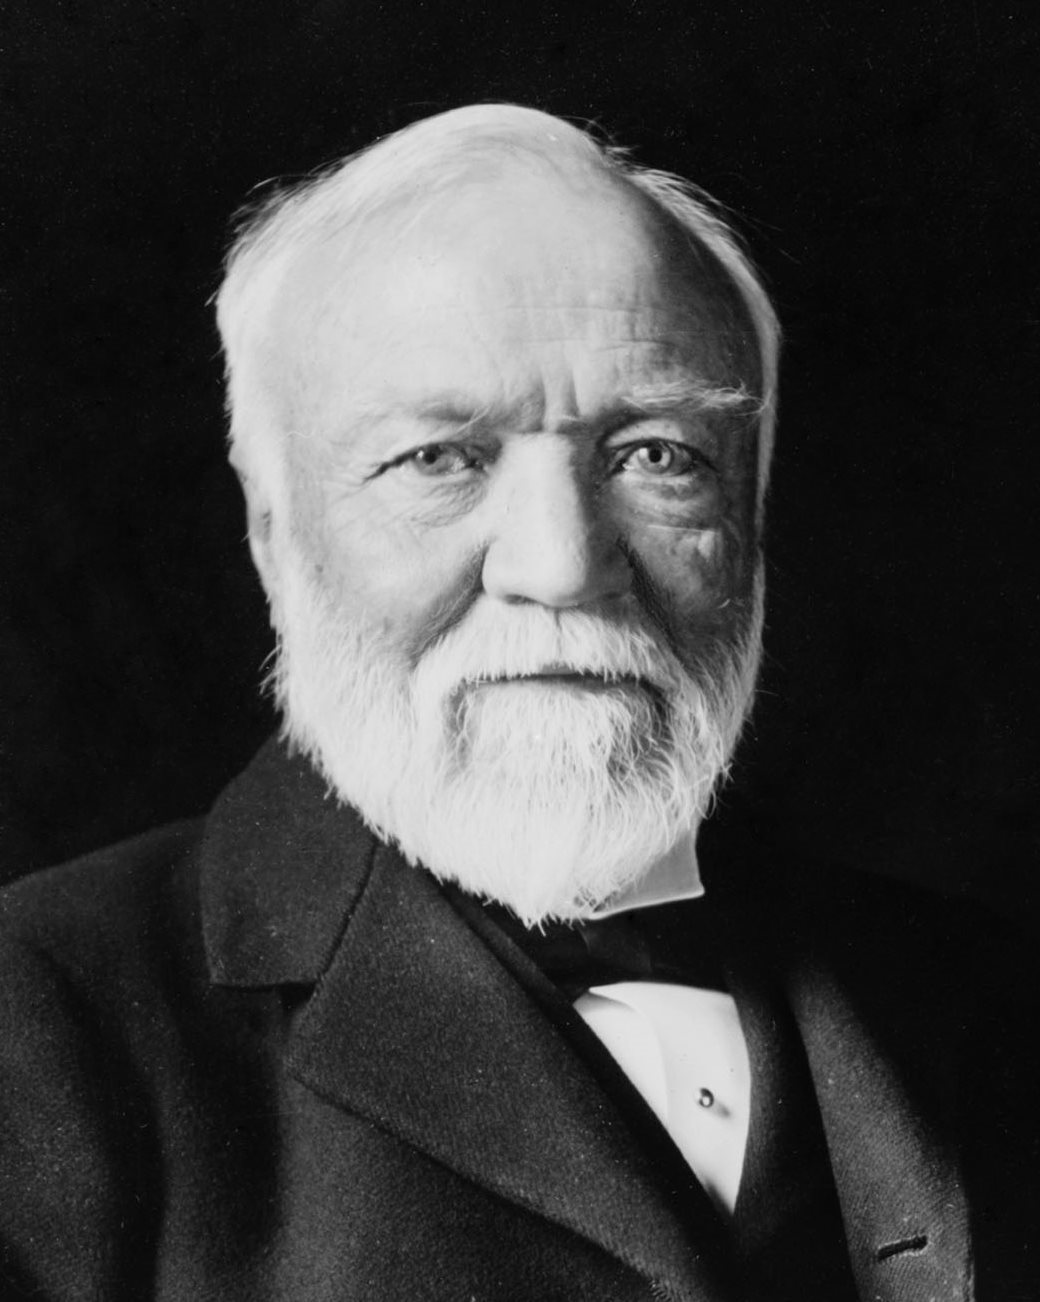 andrew carnegie essay conclusion Leadership effectiveness report – andrew carnegie in this report, i will introduce an effective leader — andrew carnegie, a famous entrepreneur who led the steel industry to expanse and develop in whole america in the late 19th century.